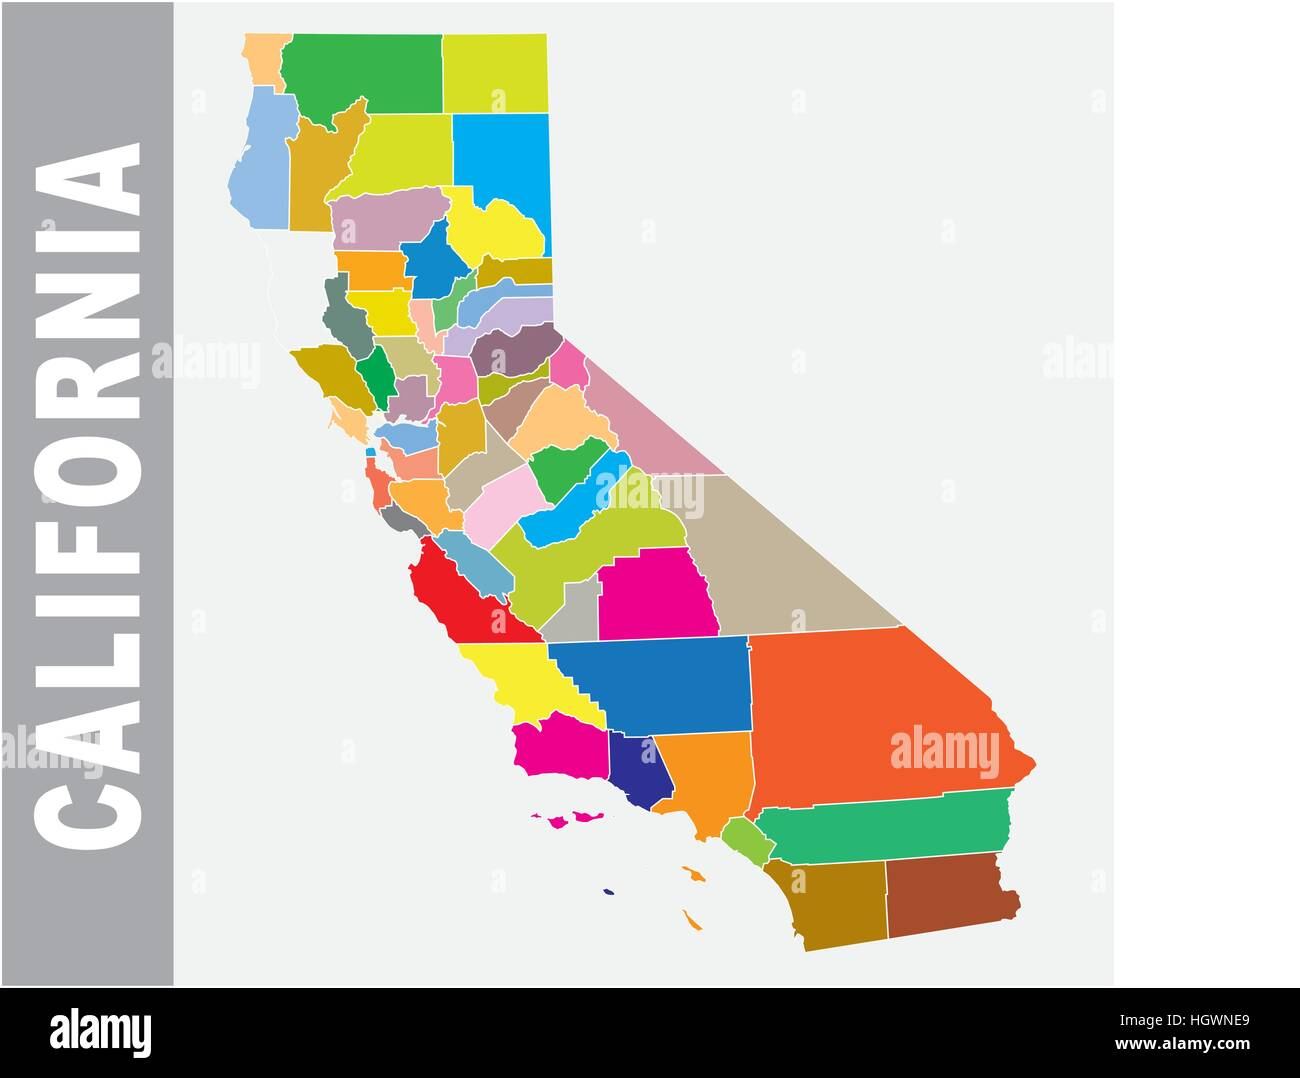 Colorful California administrative and political vector map ... on california counties, california tourist map, california regional map, california election map 2012, california judicial system, california food map, california nature map, california language map, california history map, california climate map, california tourist attractions, california natural resource, california state physical map, california map projection, california resource map, california google maps, california republican democrat map by county, california shaded relief map, lake county california road map, california geographic map,